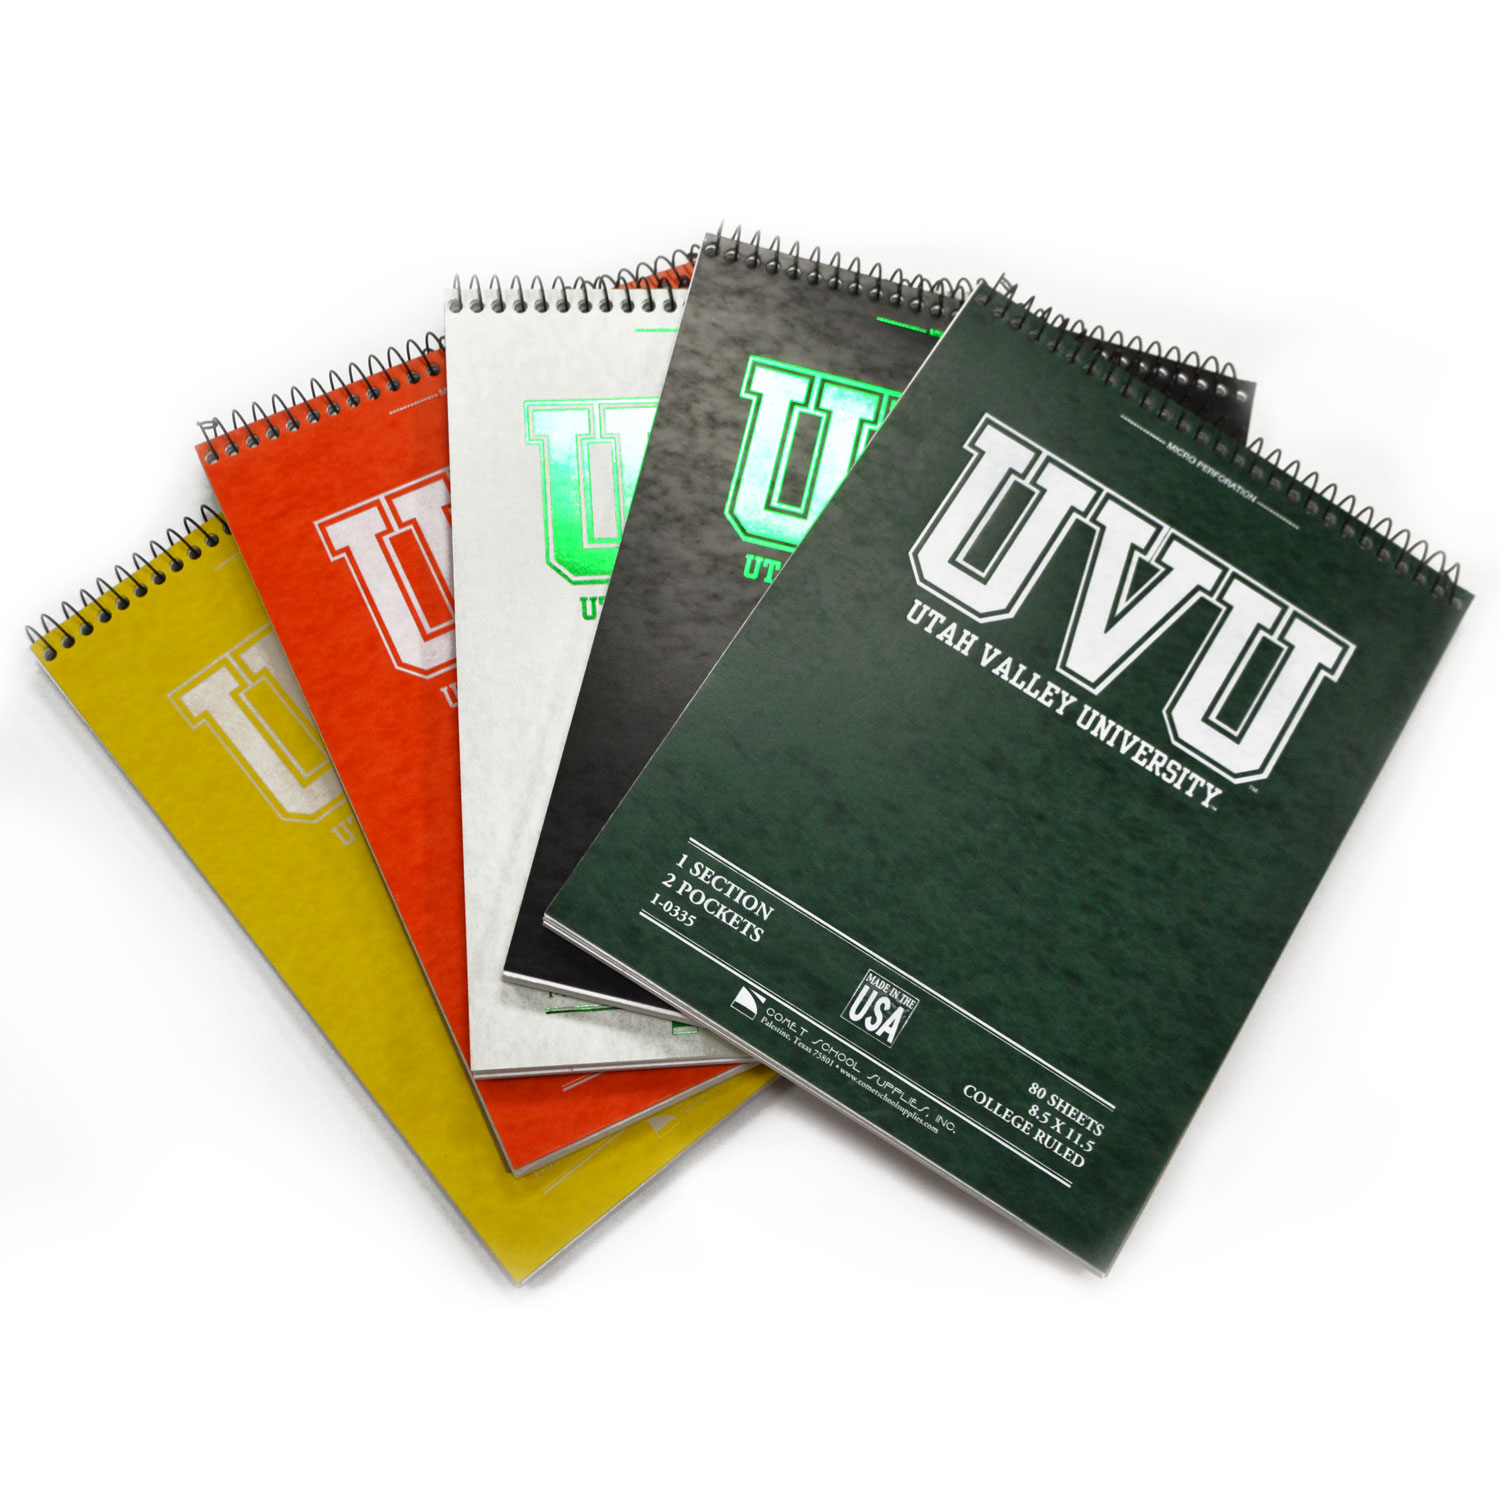 UVU top bound notebook